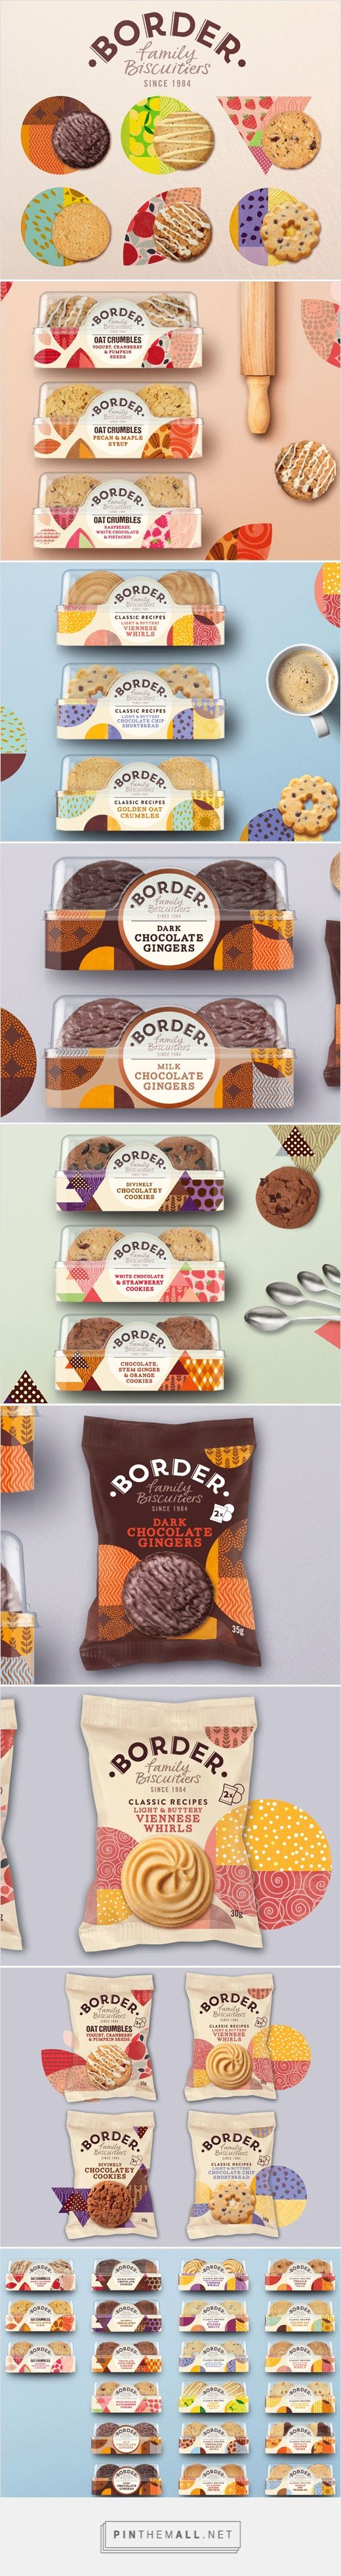 Coley Porter Bell Gives Border Biscuits a New Look - Logo Designer - created via https://pinthemall.net